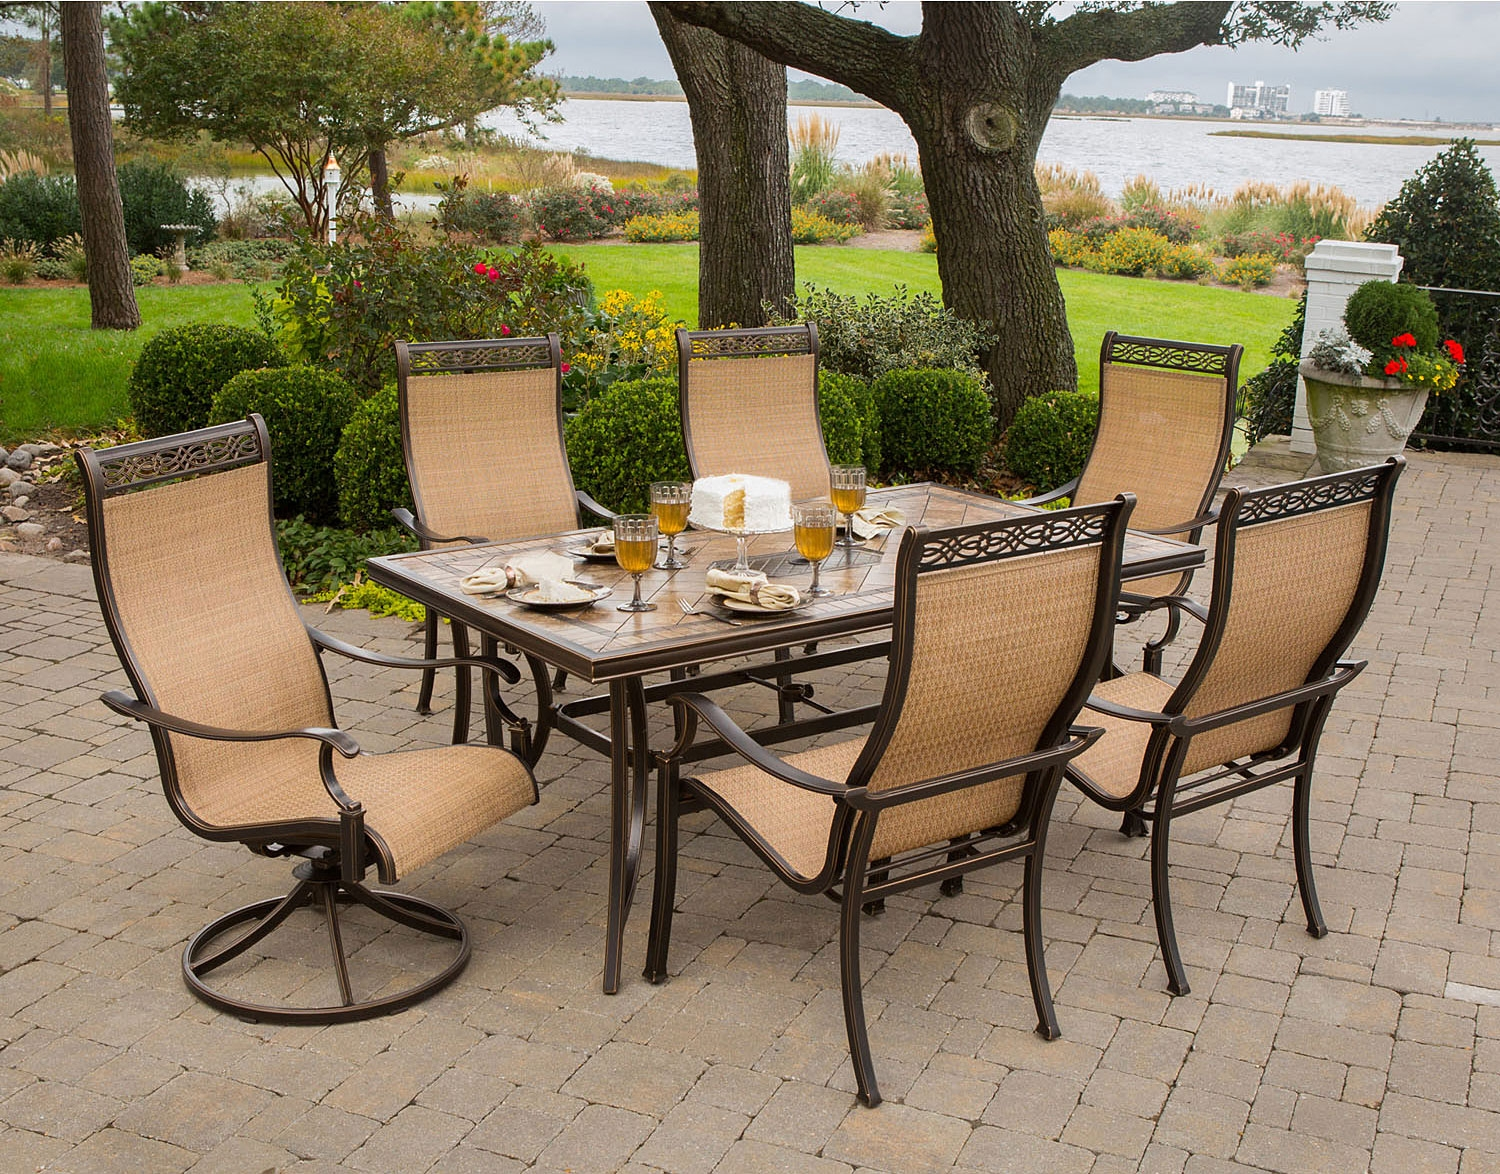 Main Image 1 2 3 4 5 6 7 8 - Hanover Brown 7-Piece Outdoor Dining Set - MONACO7PCSW